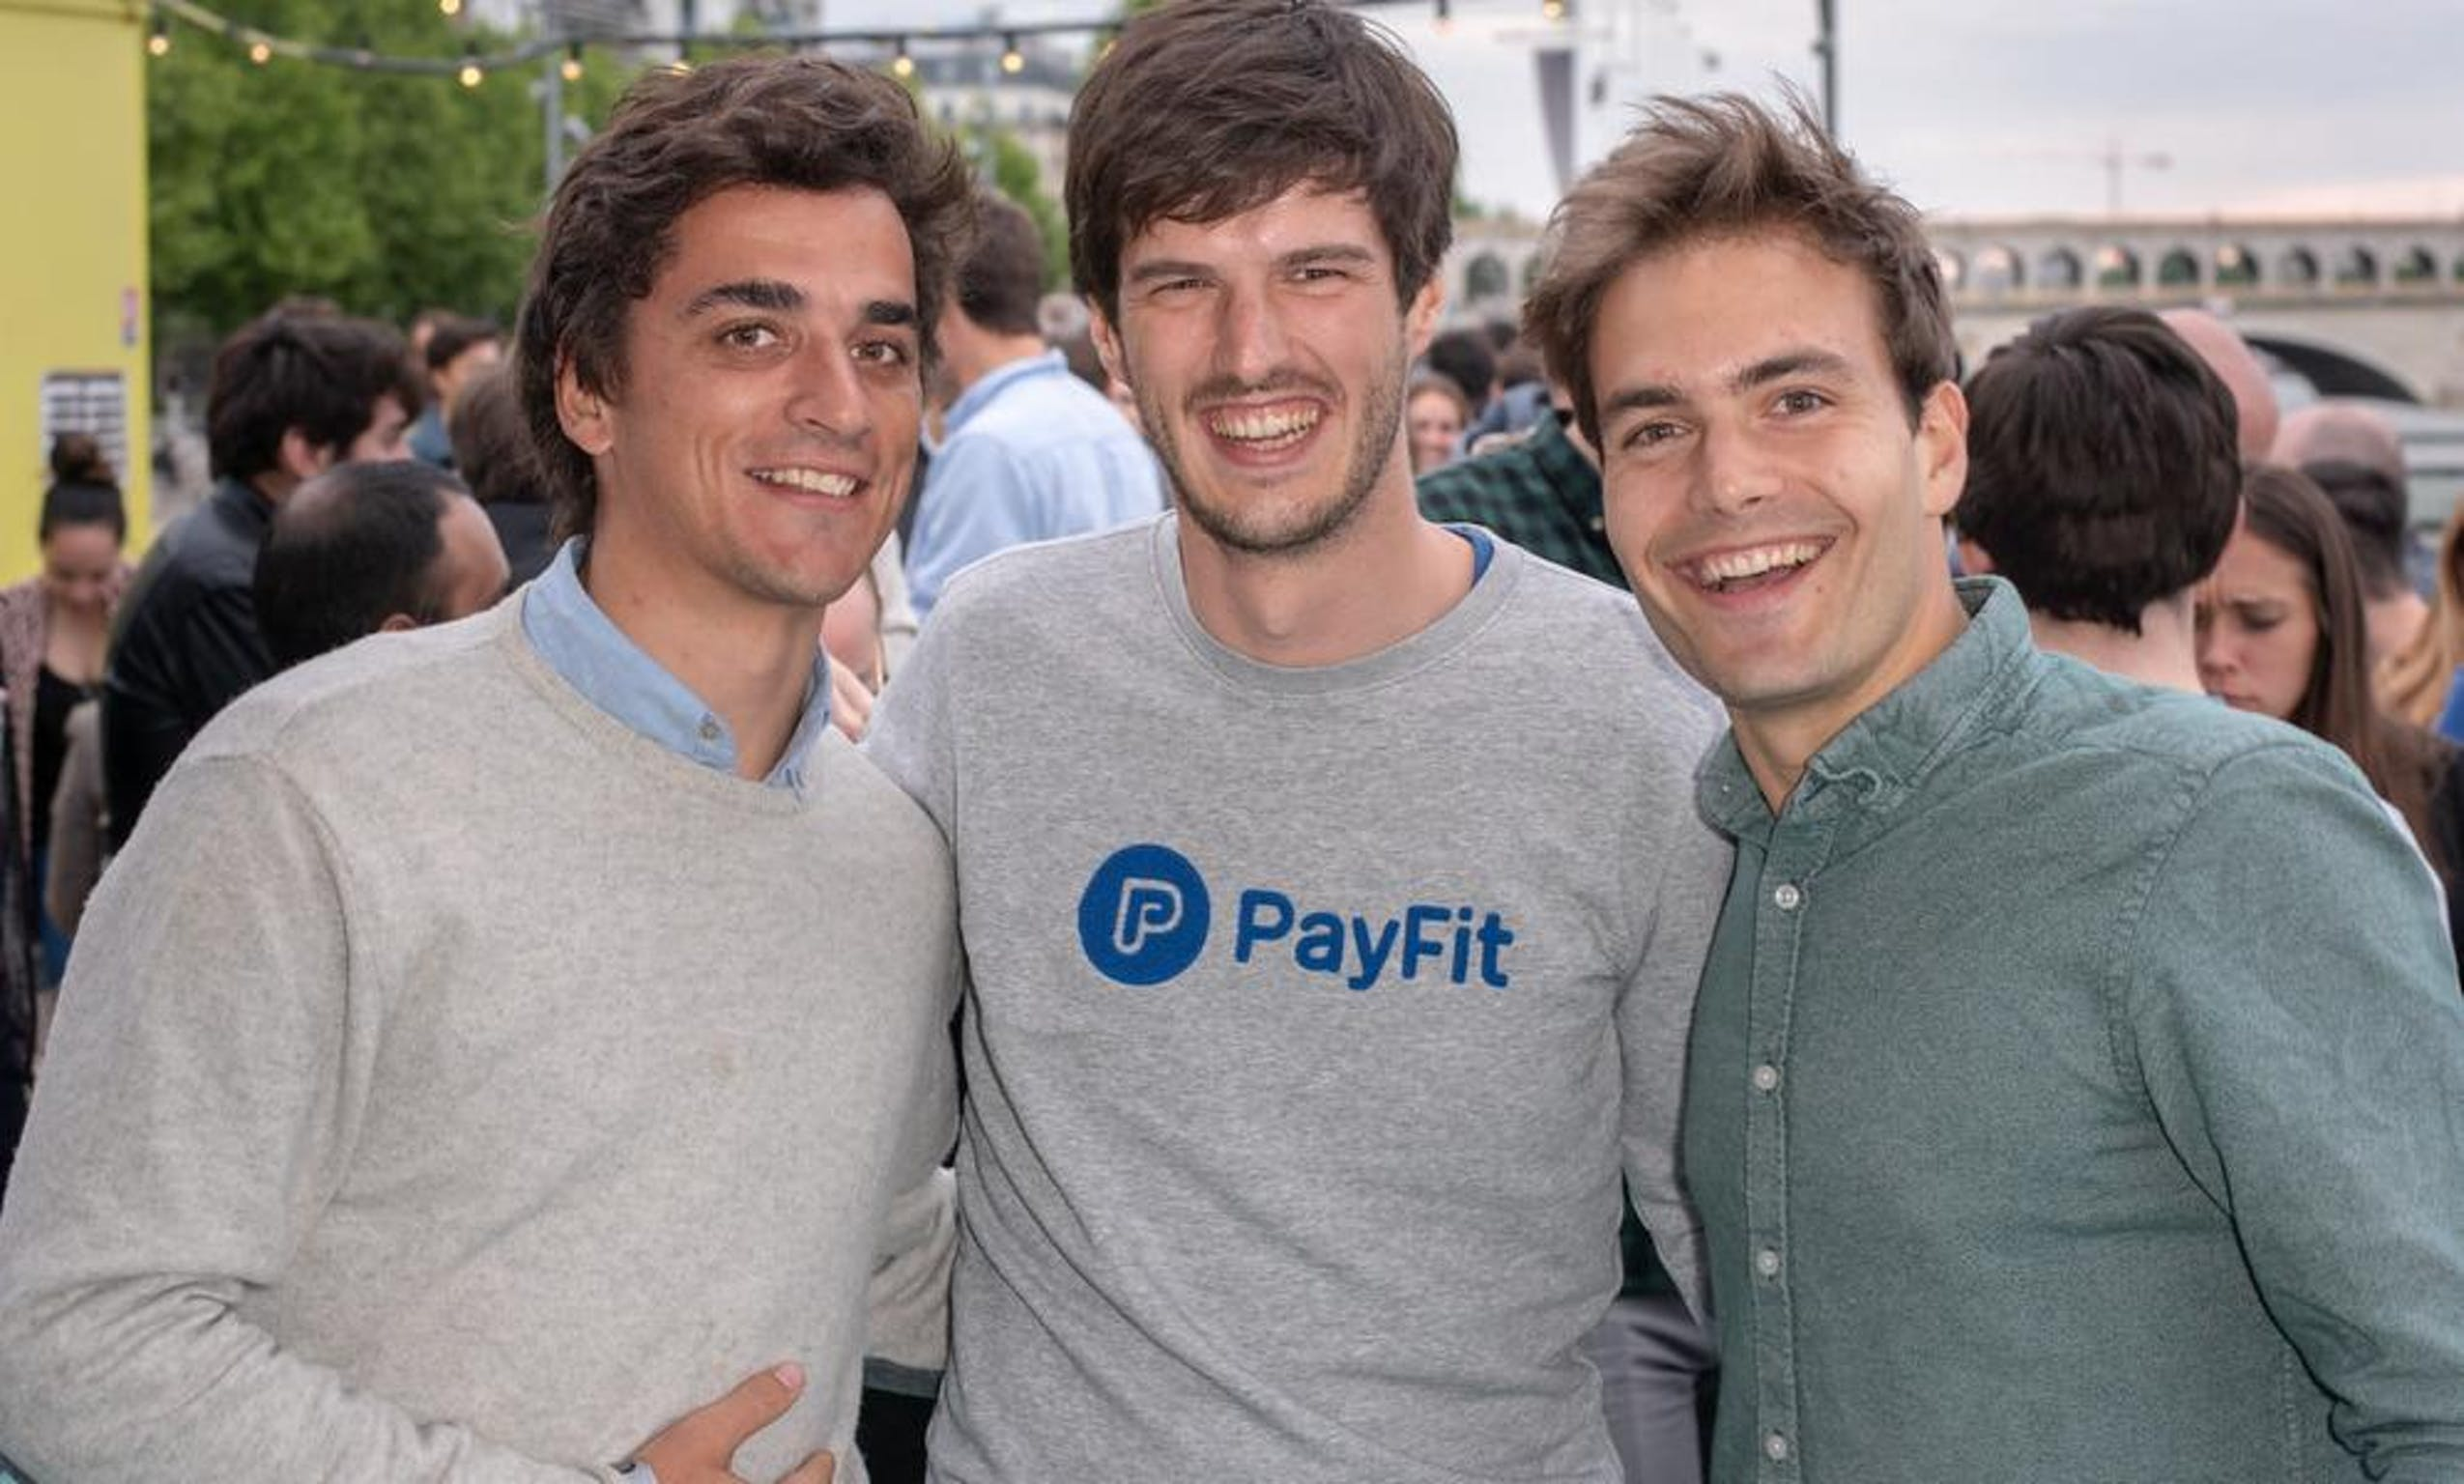 The PayFit founders.